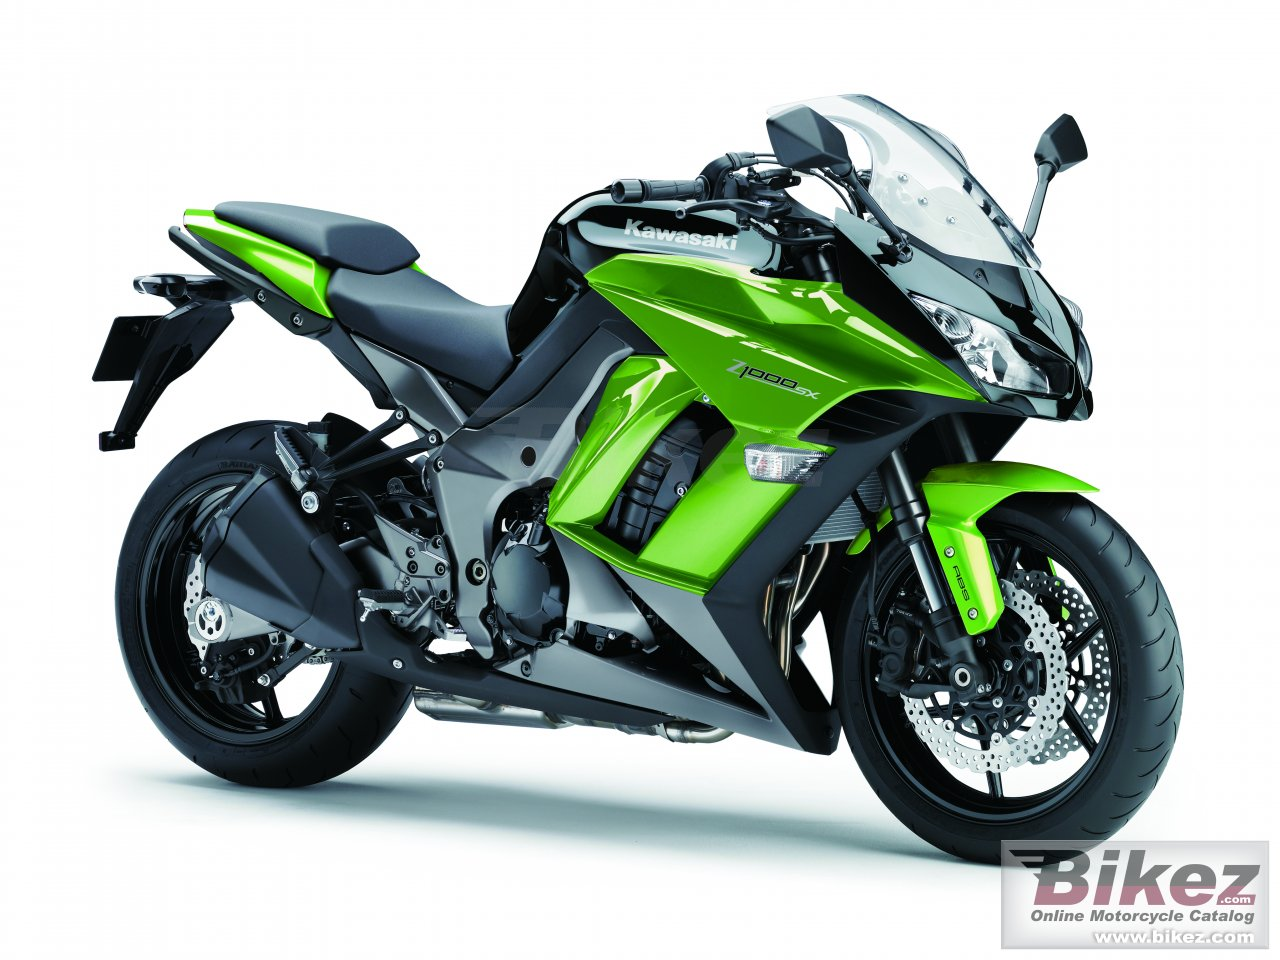 Big Kawasaki z1000 sx picture and wallpaper from Bikez.com